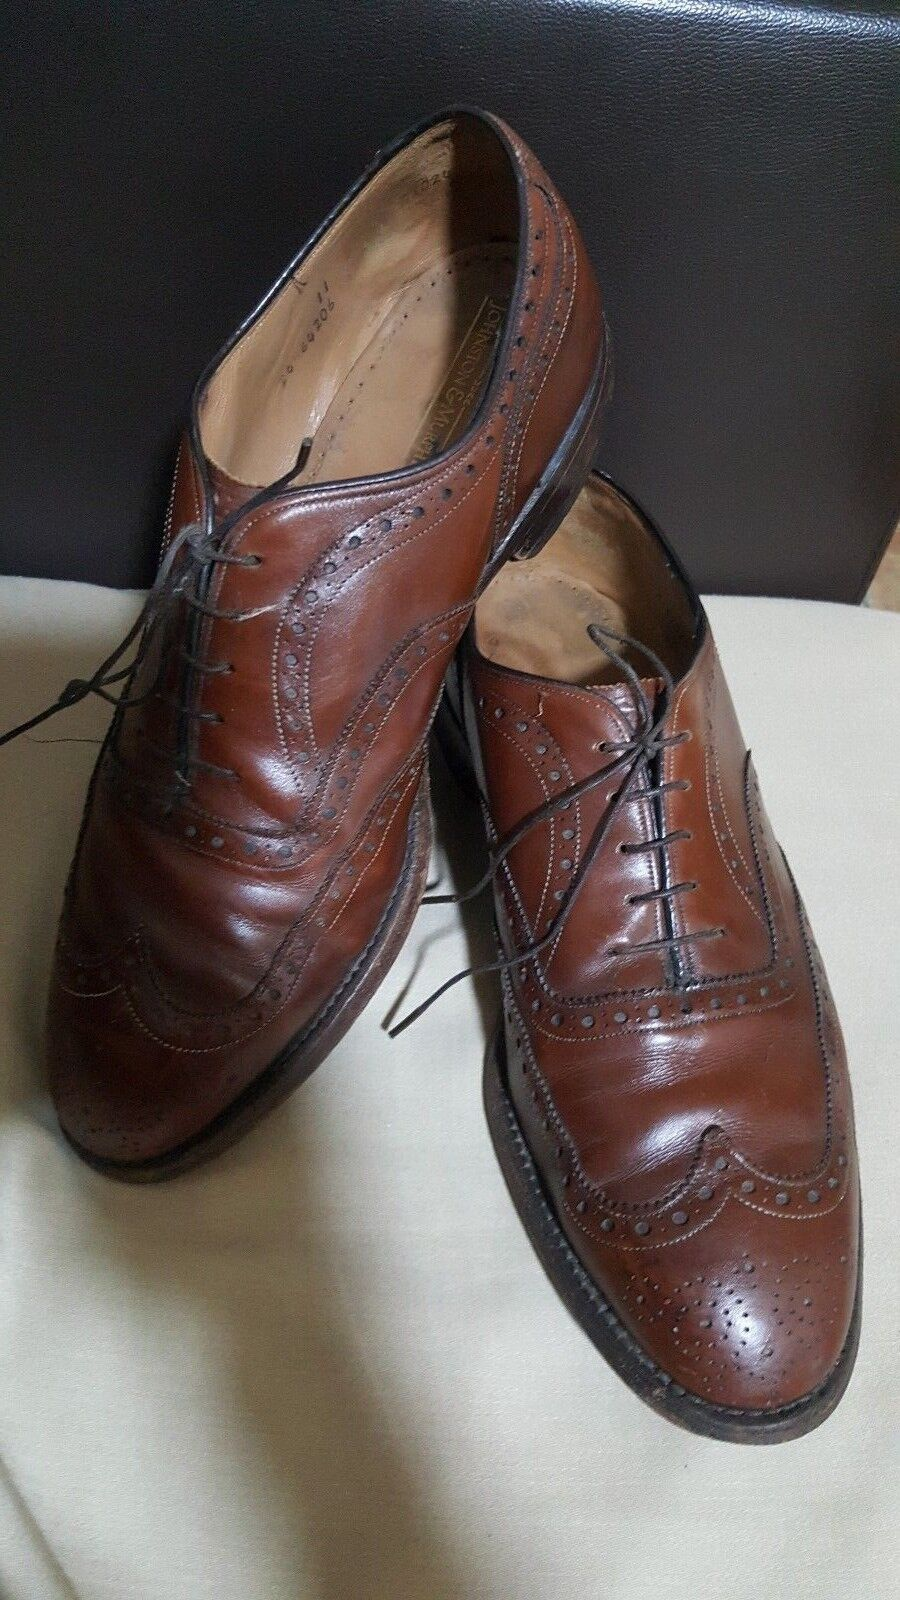 JOHNSTON&MURPHY Made in USA Brown Leather Men's shoes -size UK 10 EU 44-